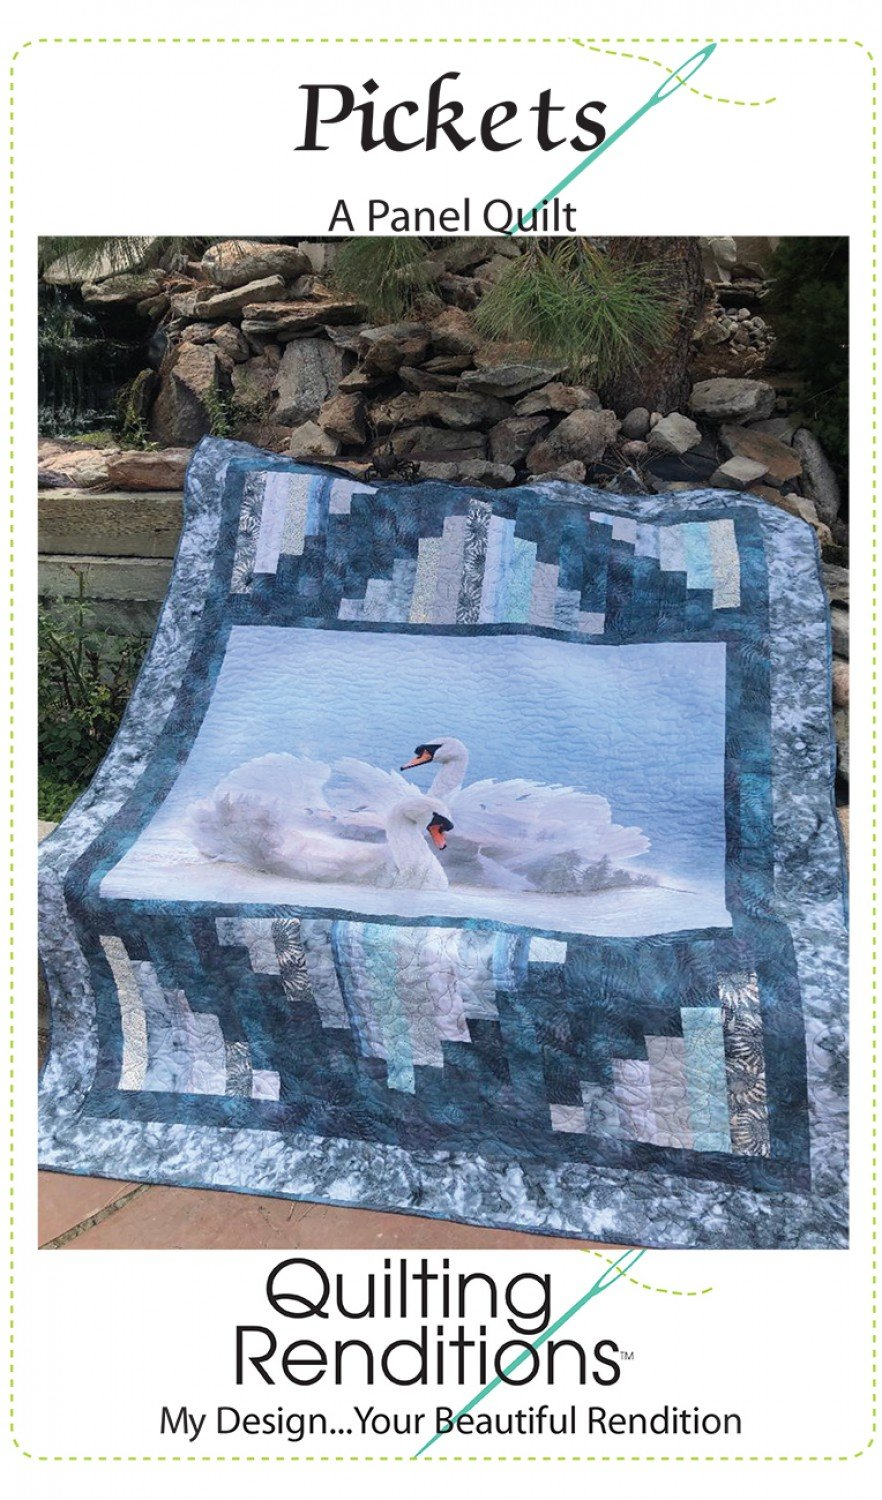 Pickets - A Panel Quilt/Quilting Renditions